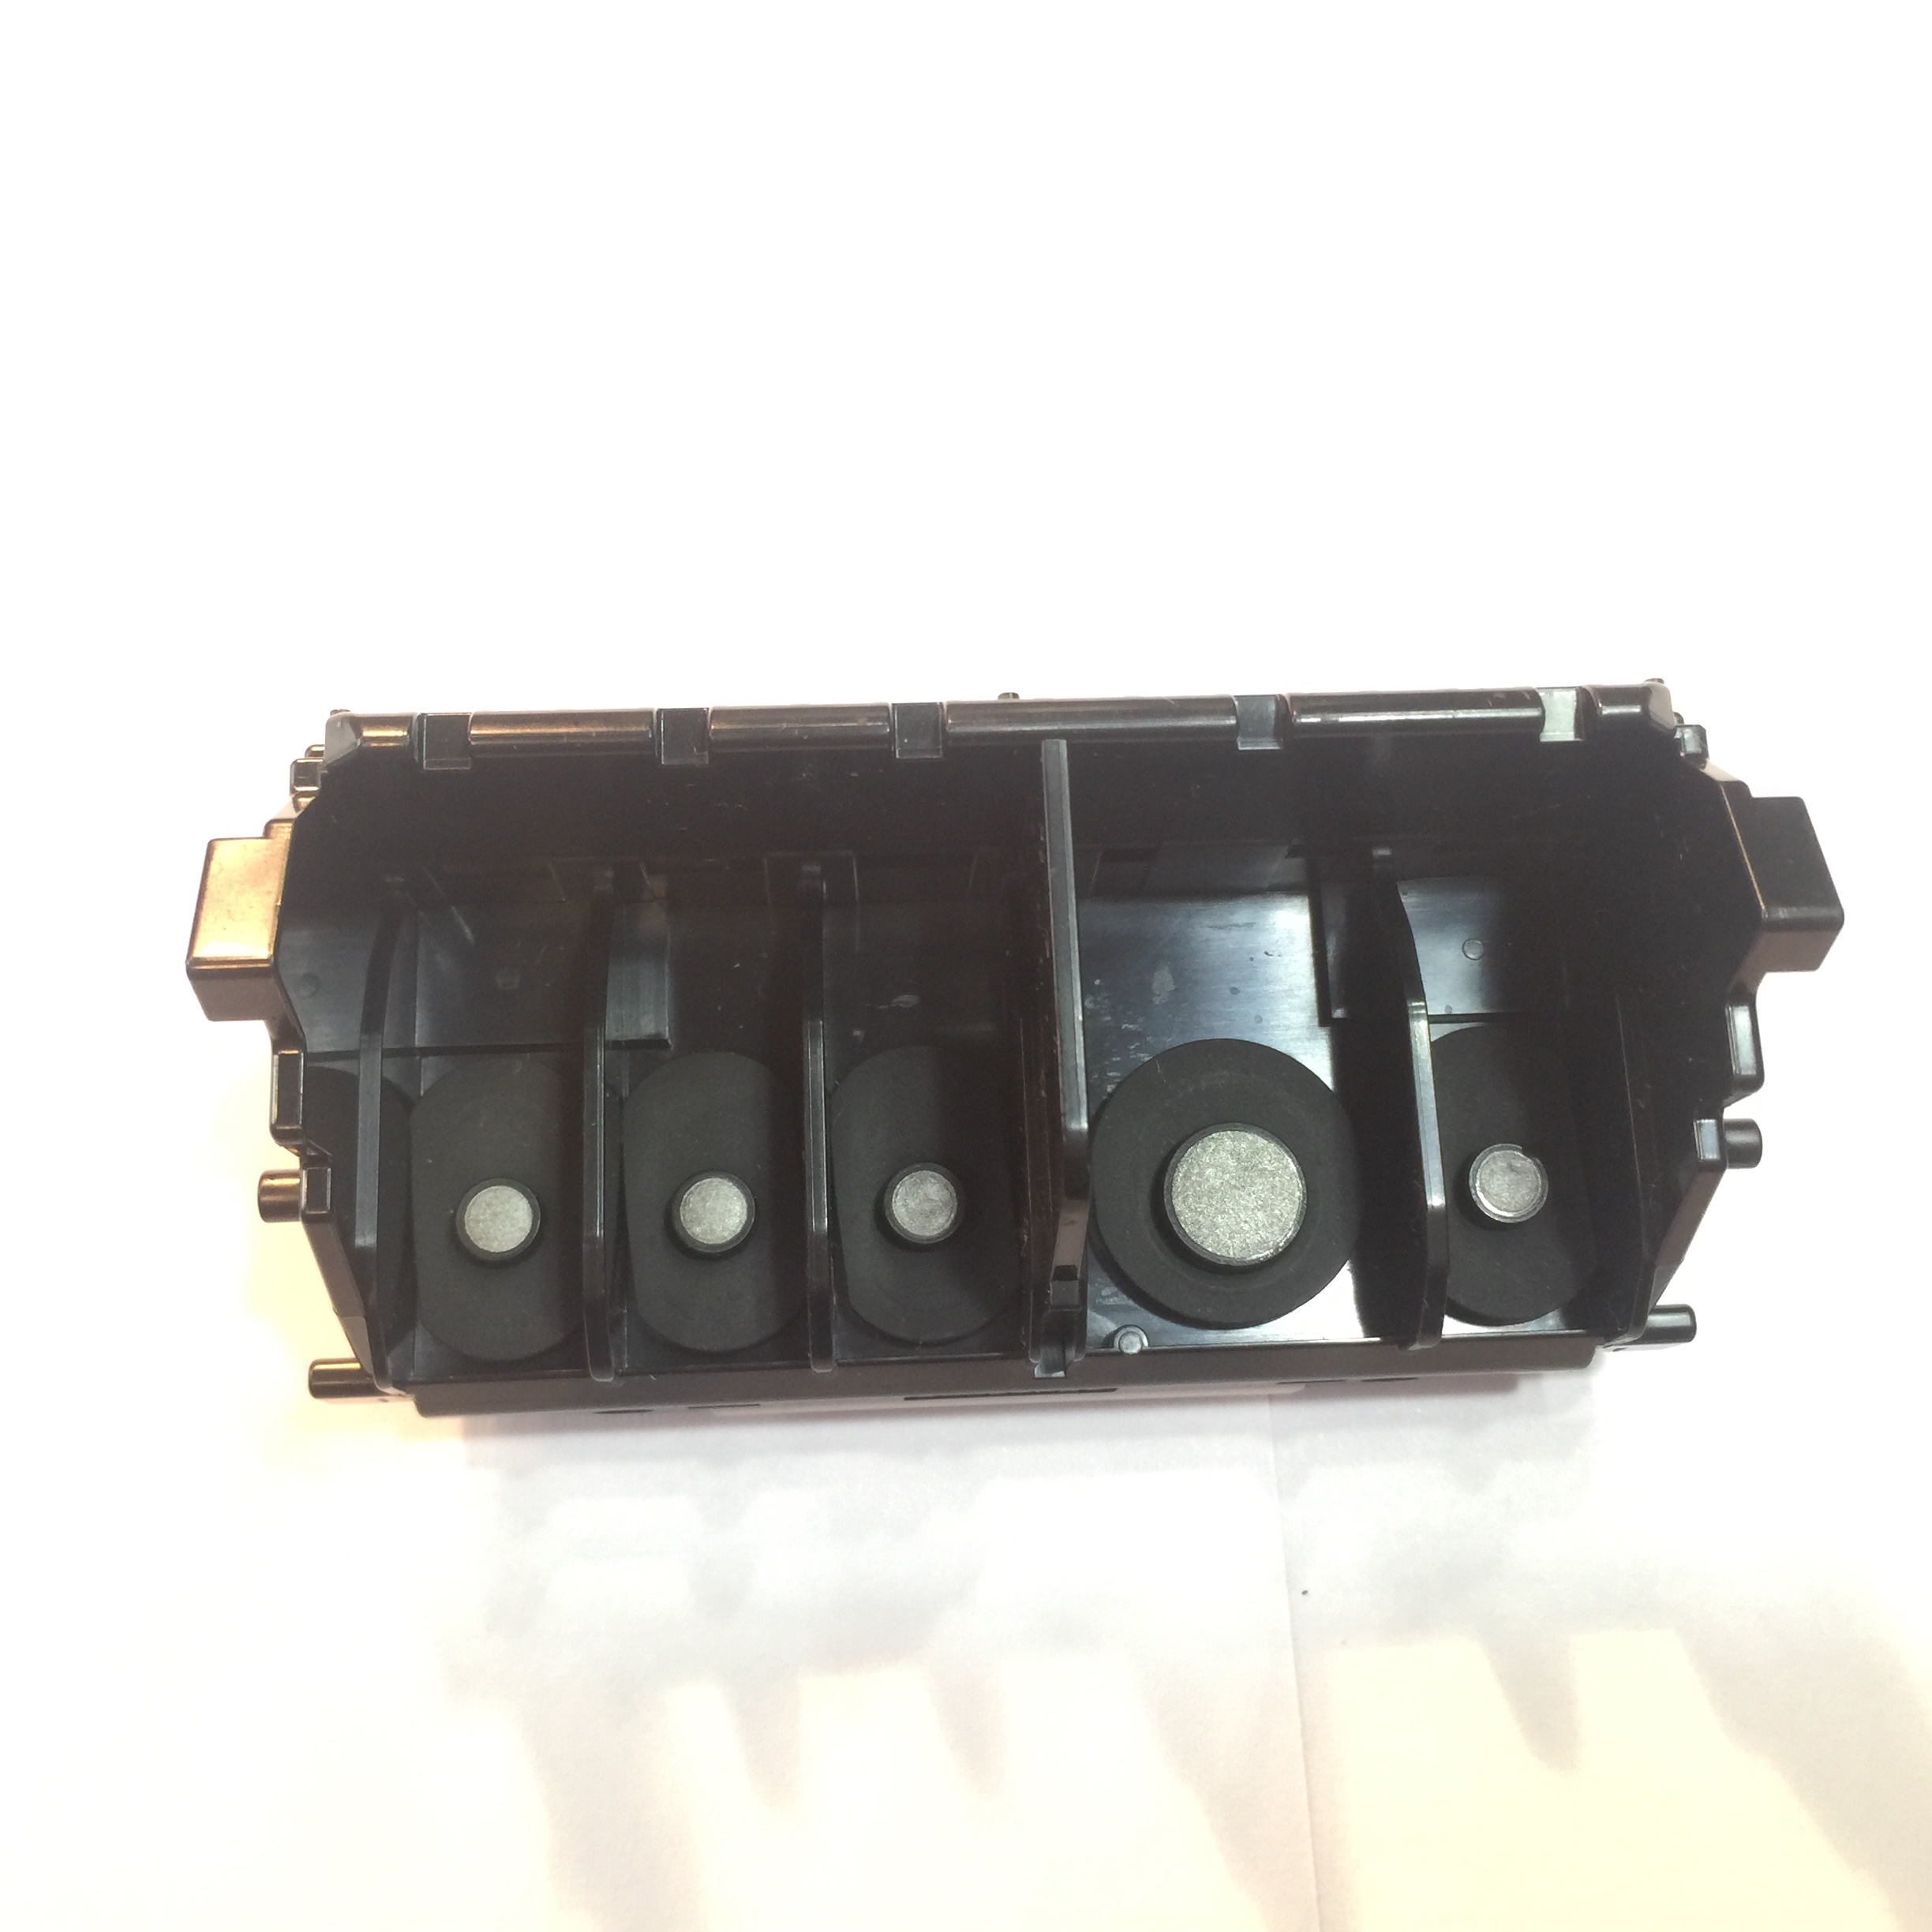 PRINT HEAD QY6 0082 PRINTHEAD FOR CANON MG5420 MG 6320 MG6420 iP7220 MG5440 IP7210 SHIPPING FREE